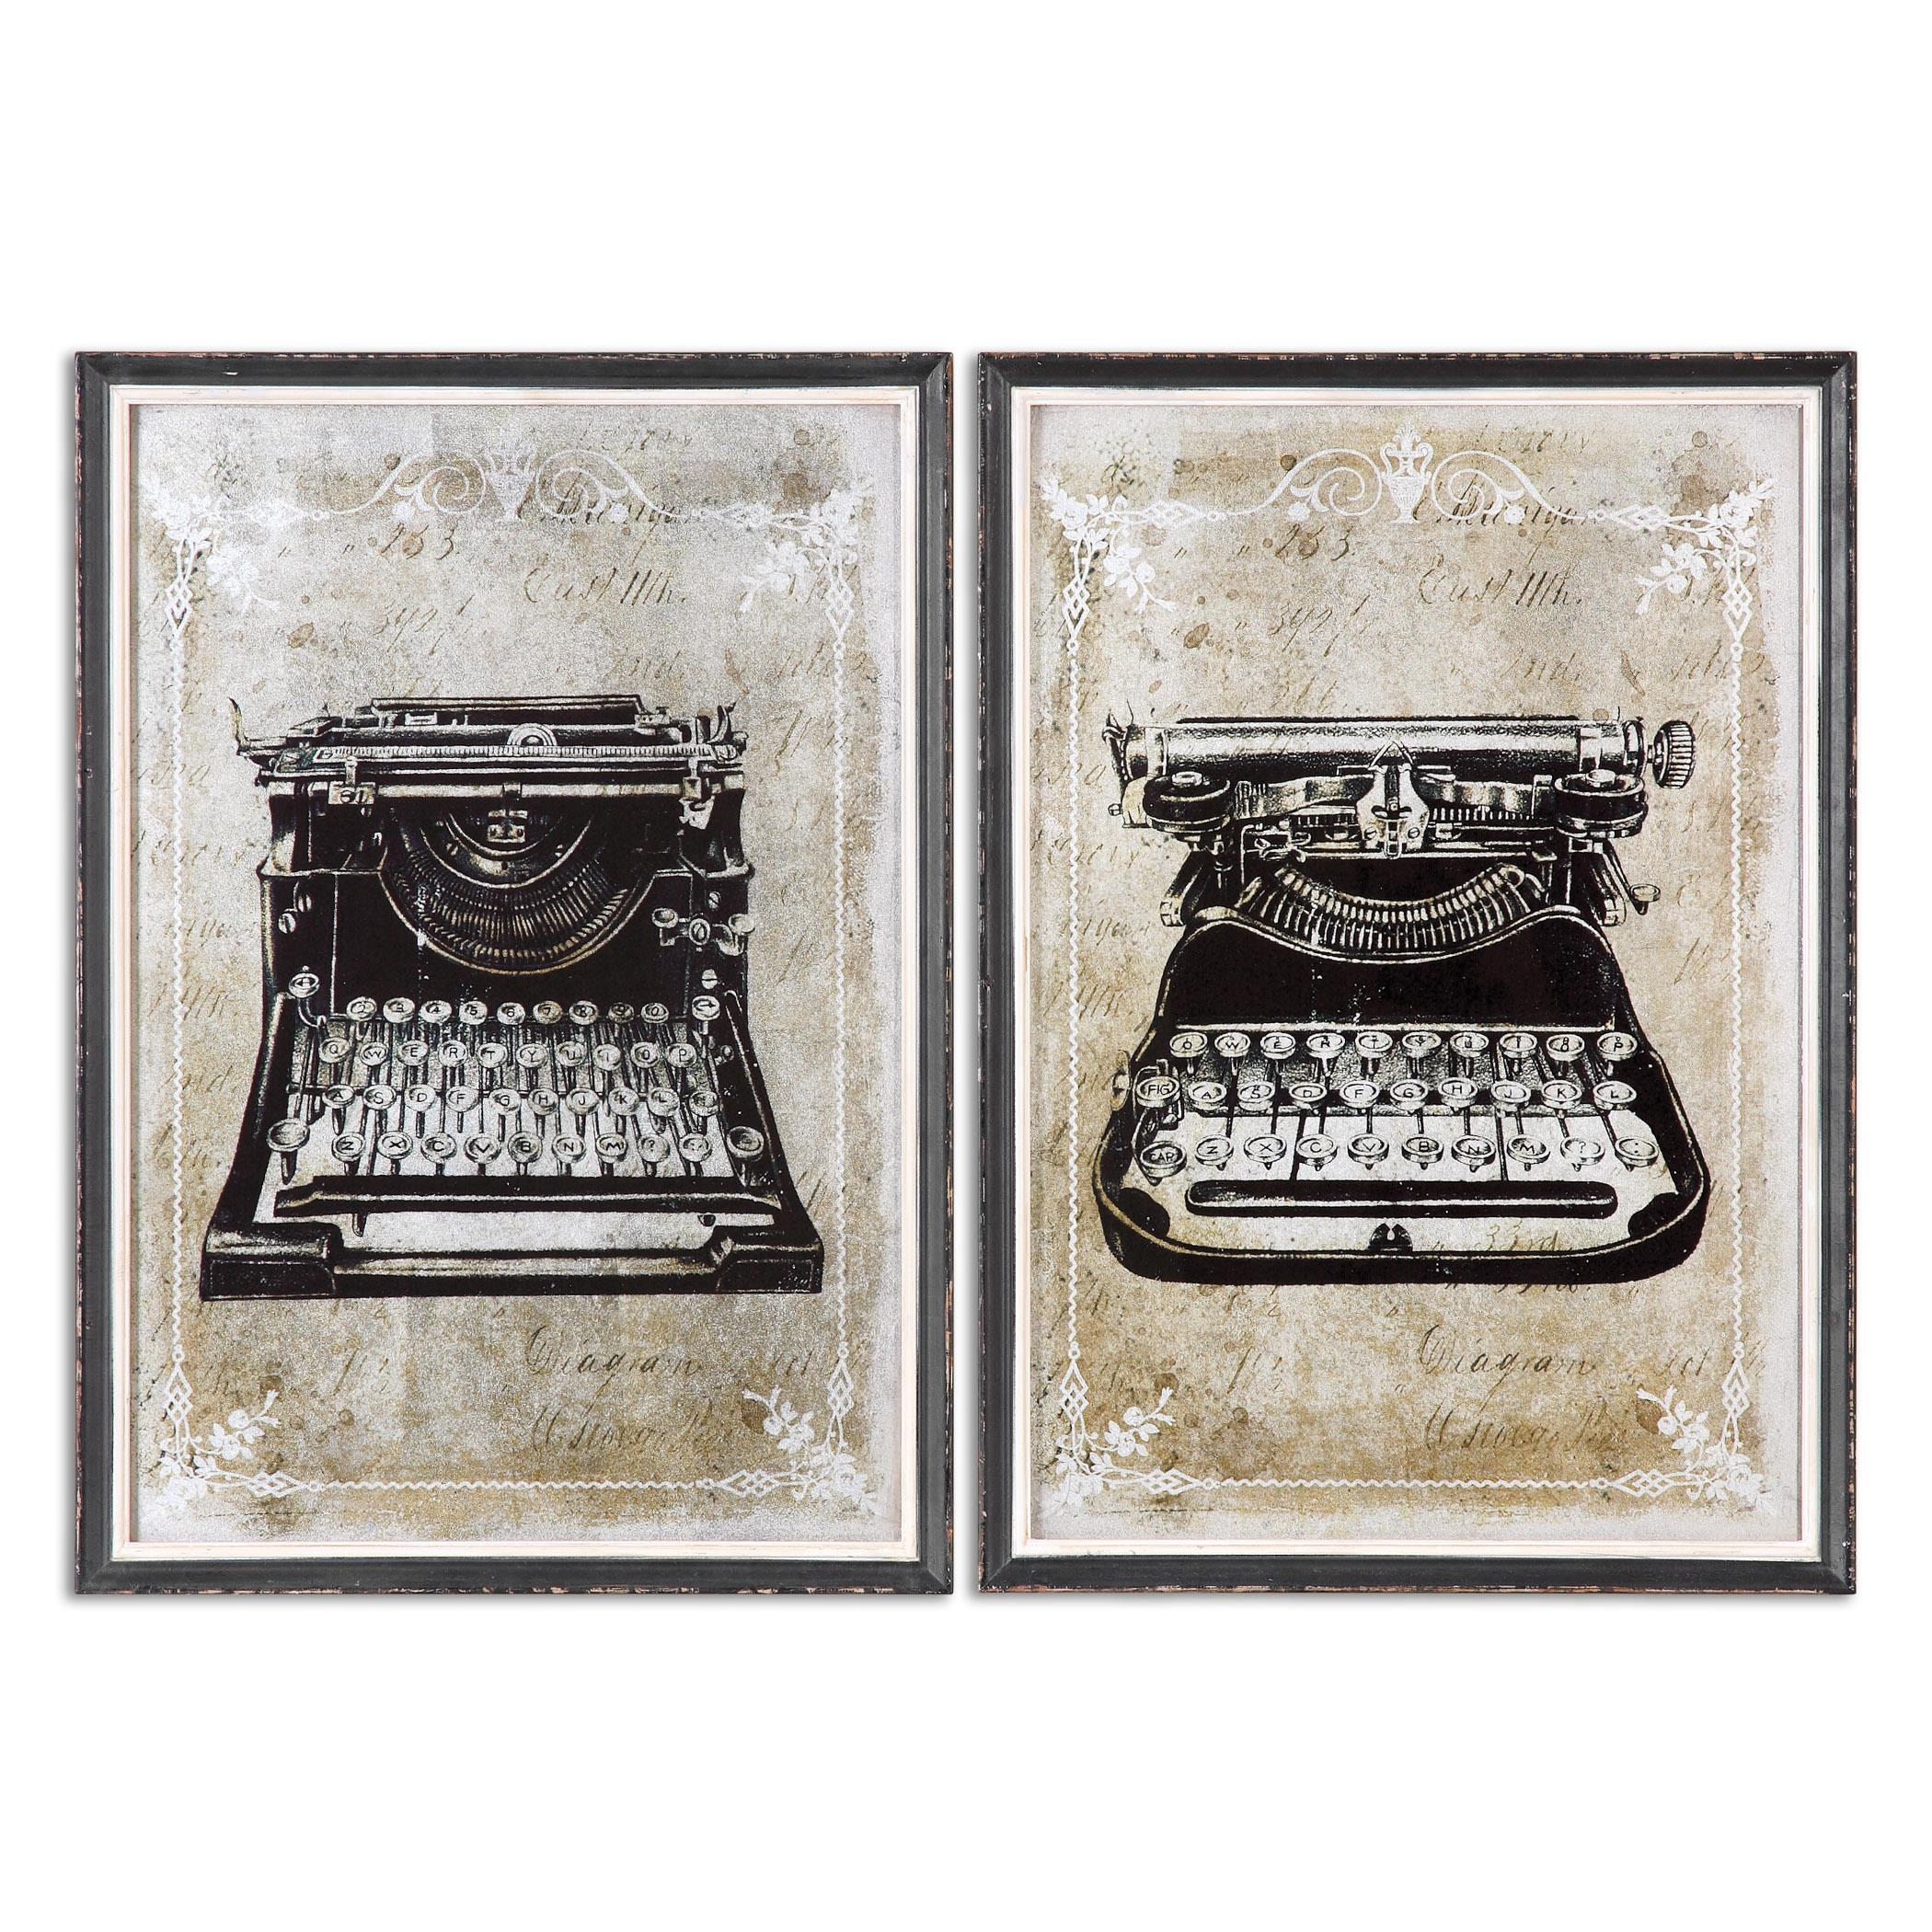 Uttermost Art Classic Typewriters Vintage Art, S/2 - Item Number: 32536